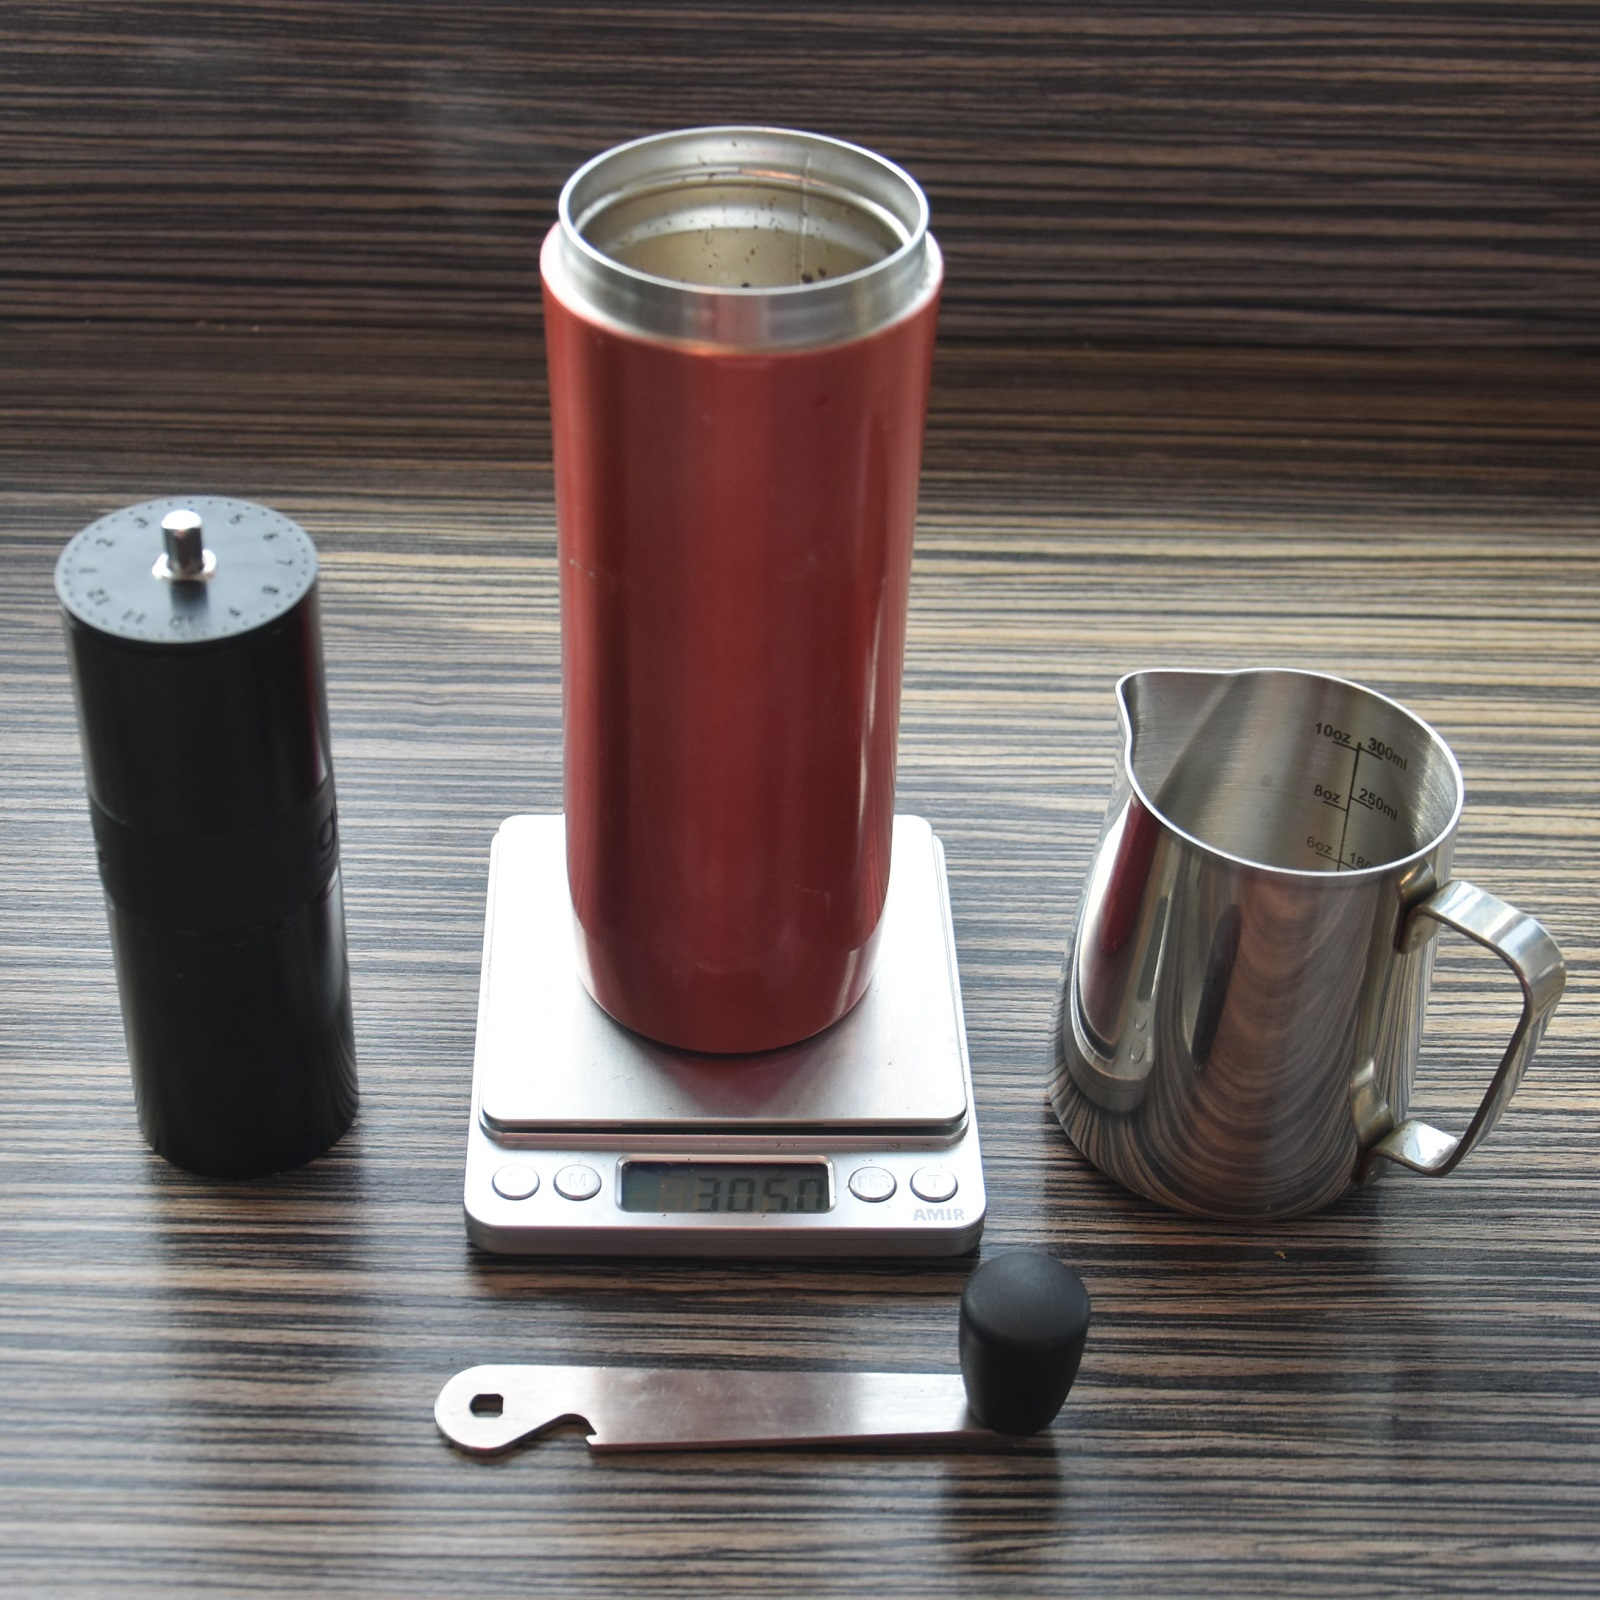 The best part of flying out of Manchester's Terminal 1? I got to make my own coffee in my Espro Travel Press, grinding the beans (Grumpy Mule's Widescreen blend) with my Aergrind from Made by Knock